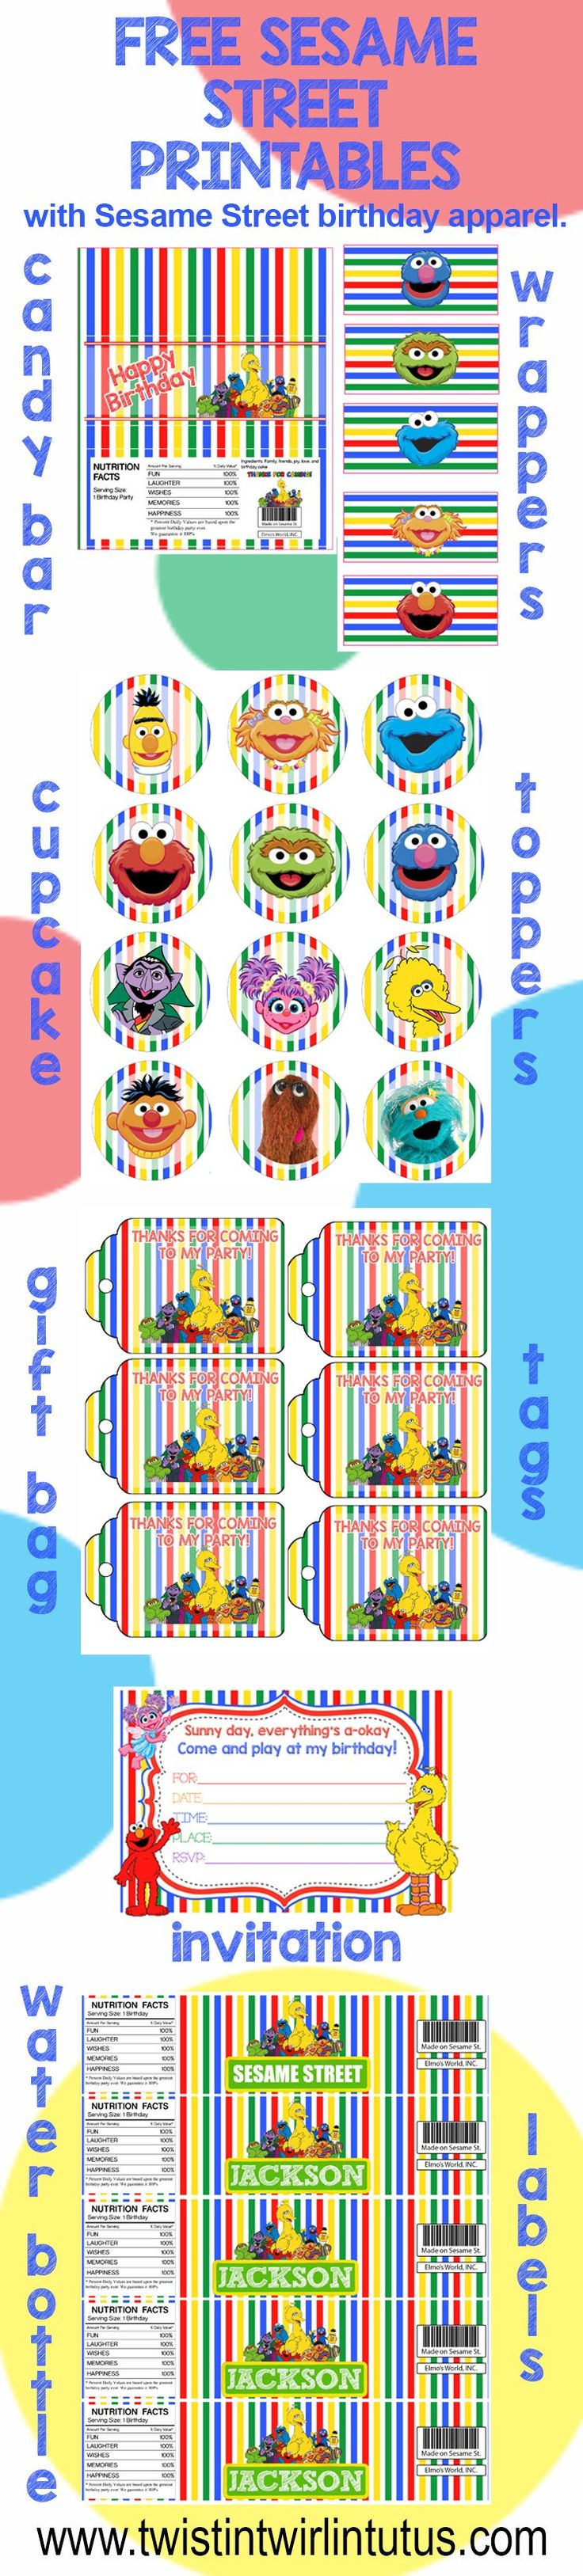 Free Sesame Street Birthday Party Printables - Sesame Street Water